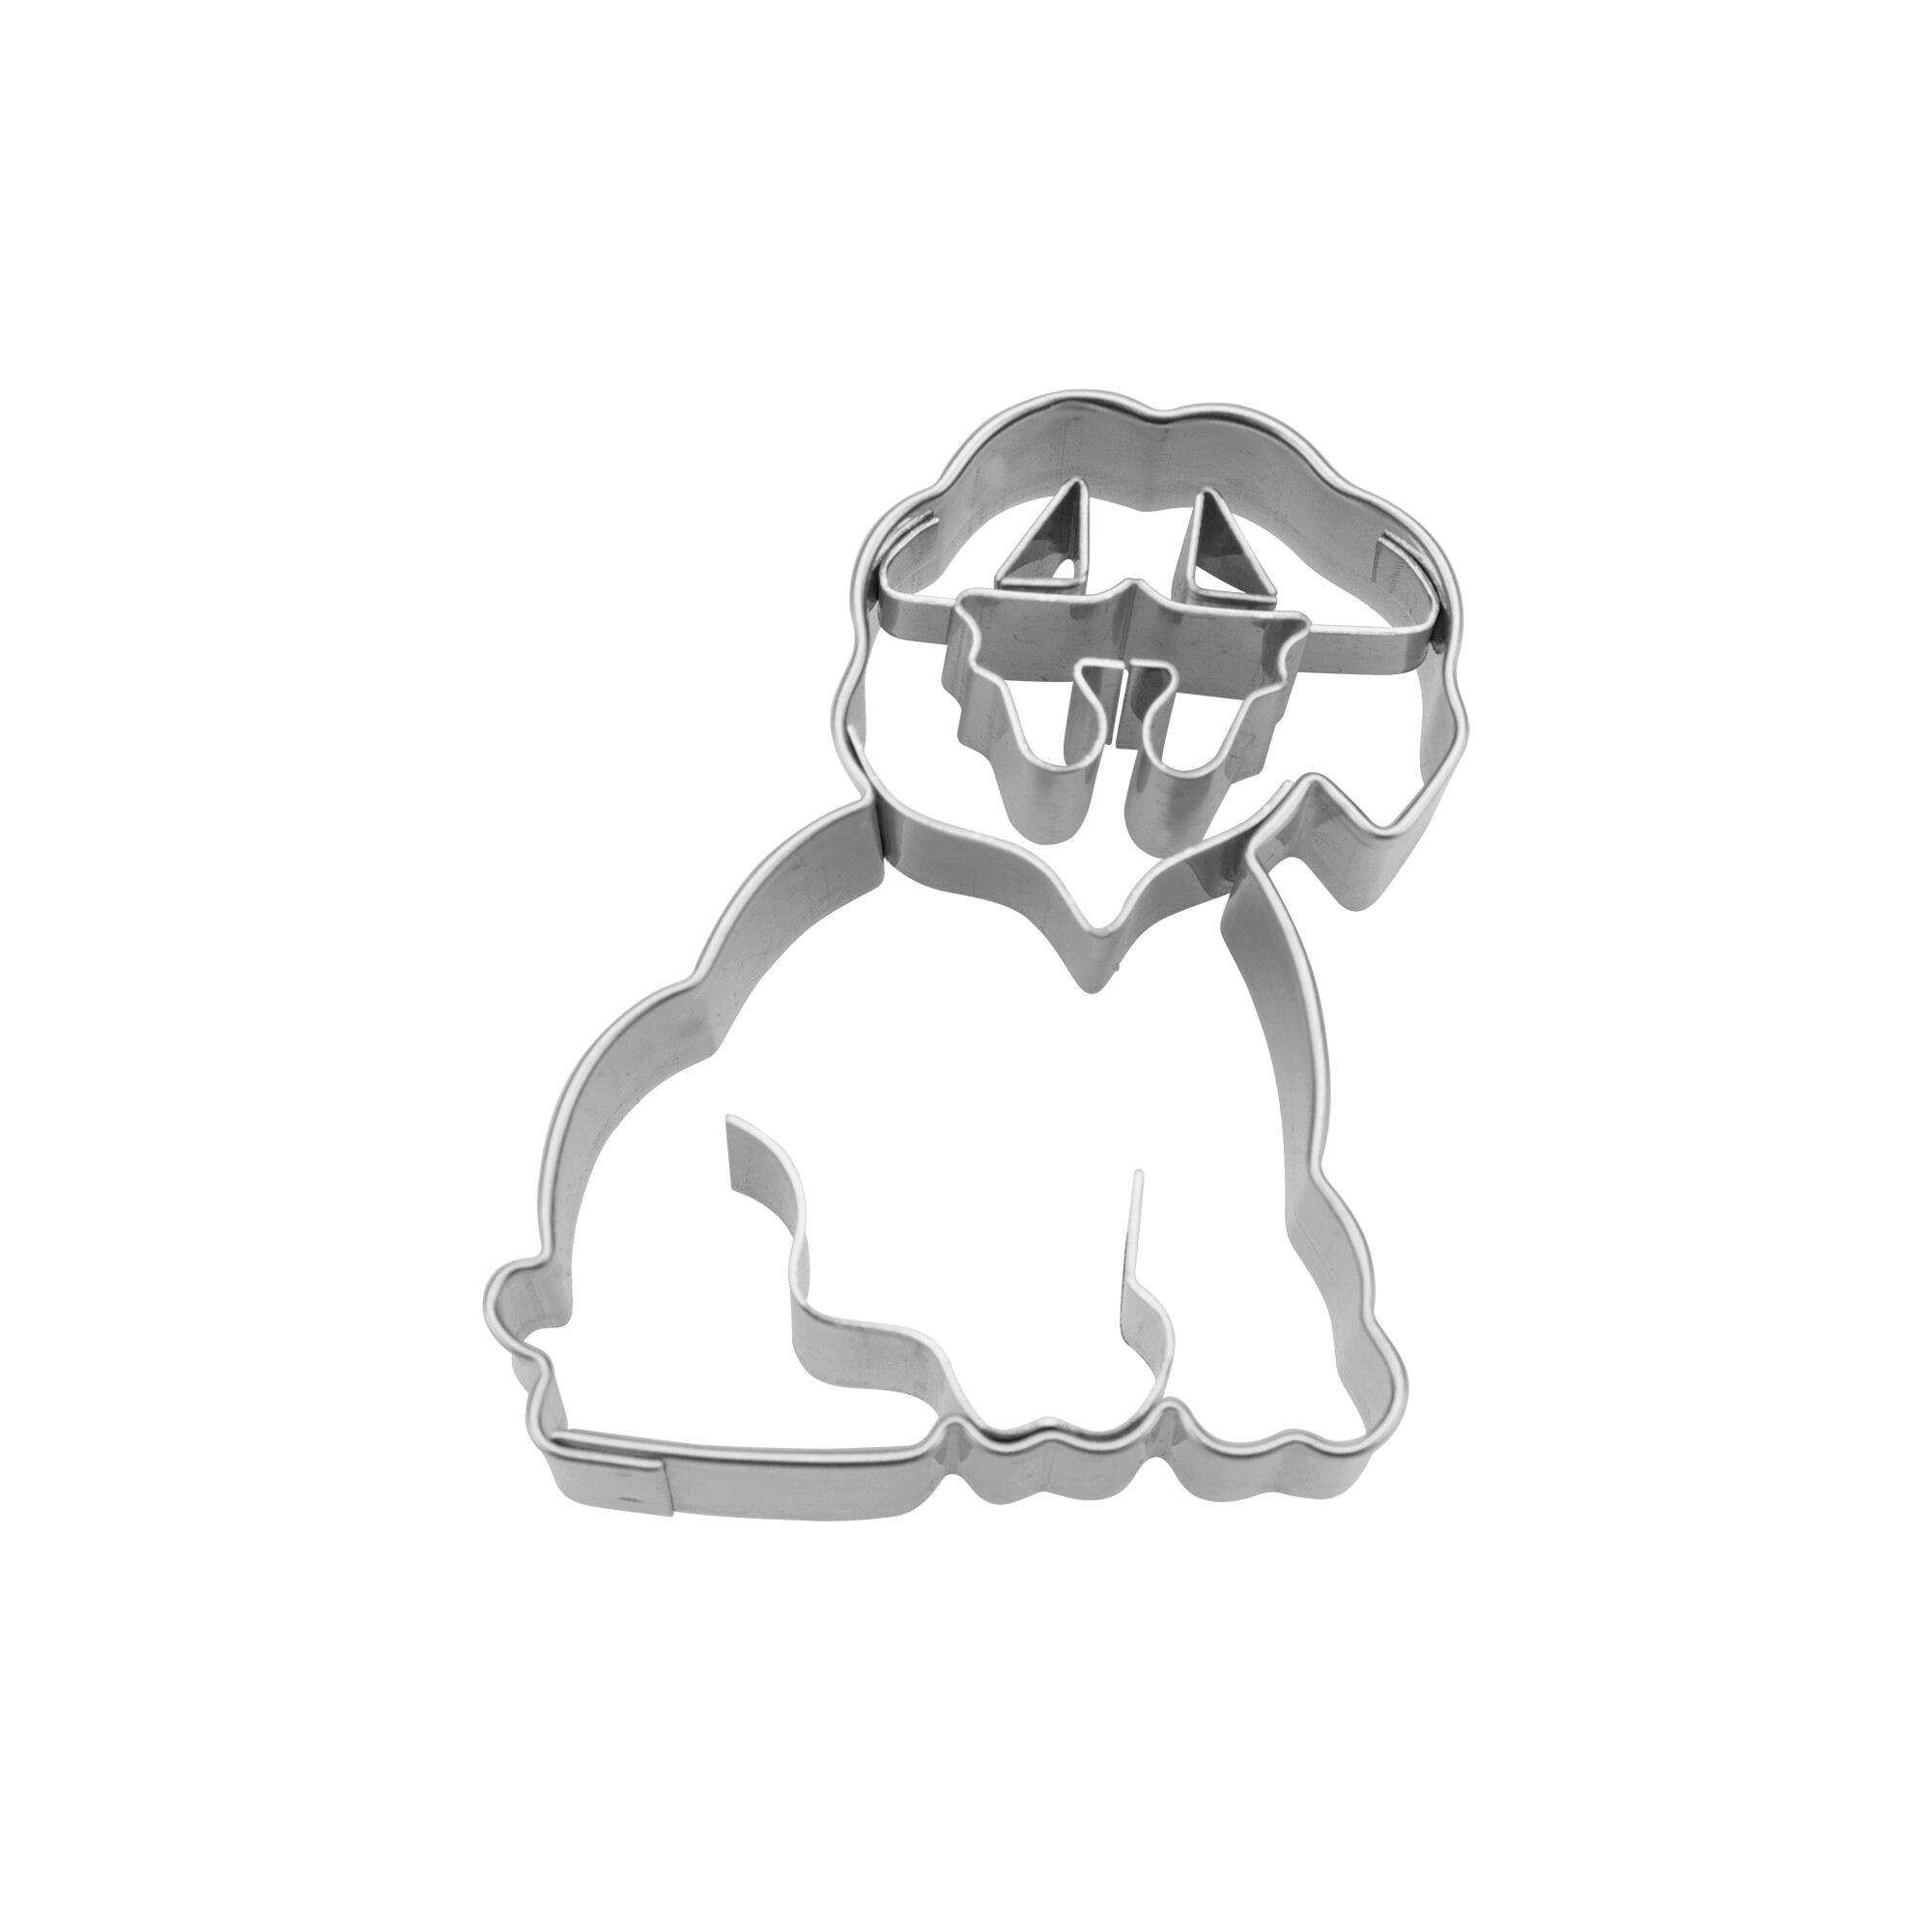 Cookie cutter with stamp - Dog